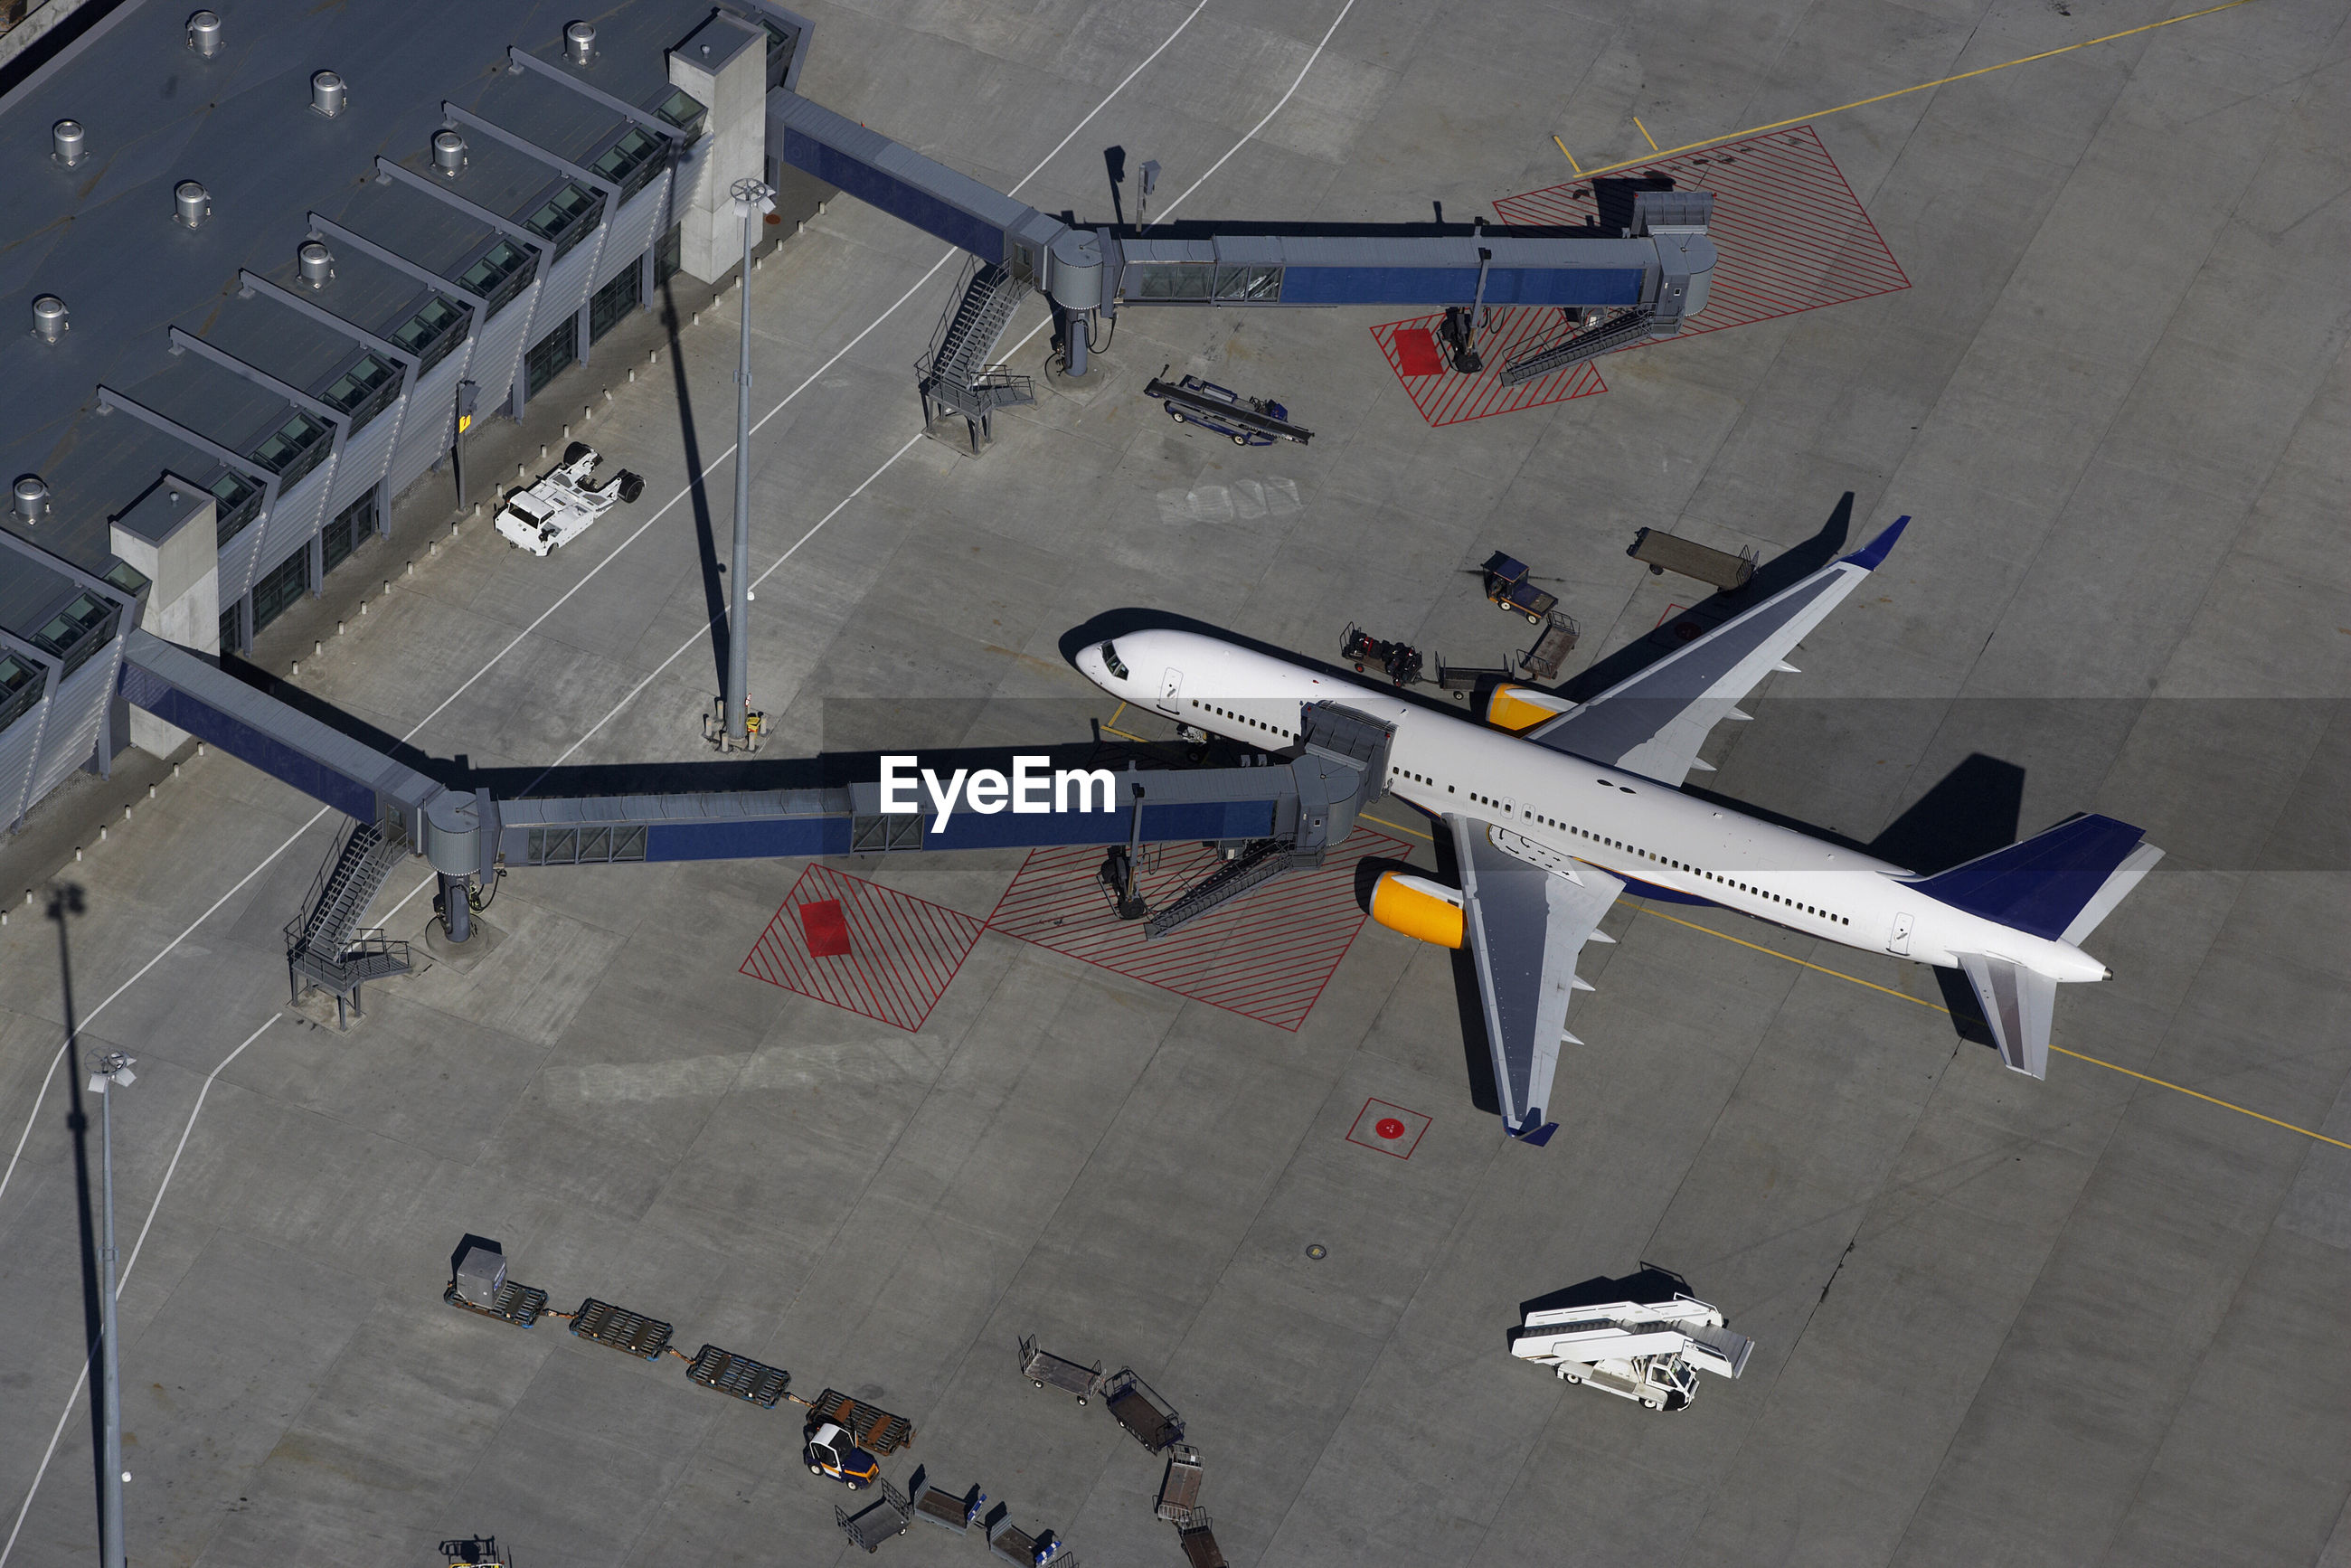 HIGH ANGLE VIEW OF AIRPLANE FLYING OVER AIRPORT